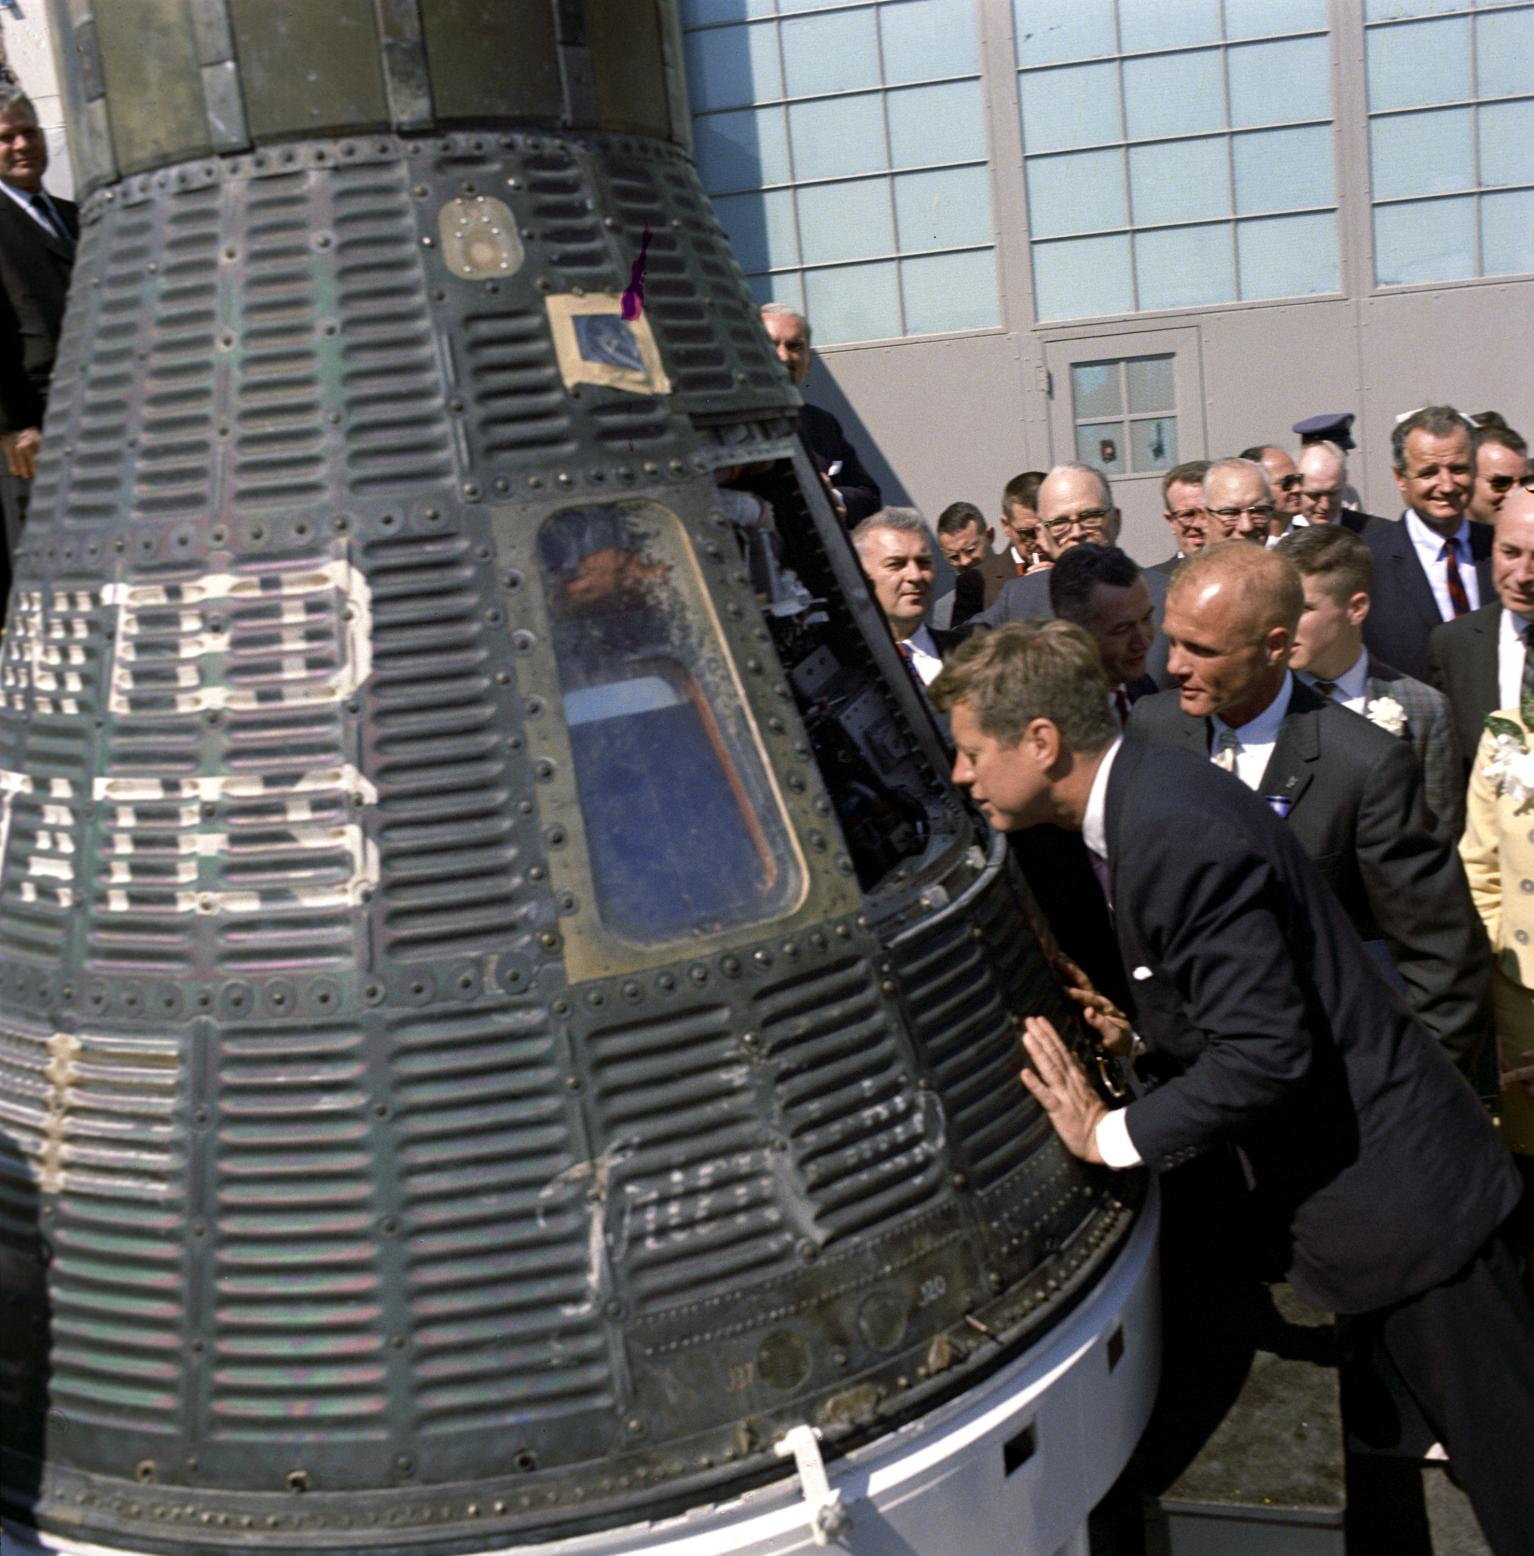 Kennedy Tours Cape Canaveral and Friendship 7 Capsule